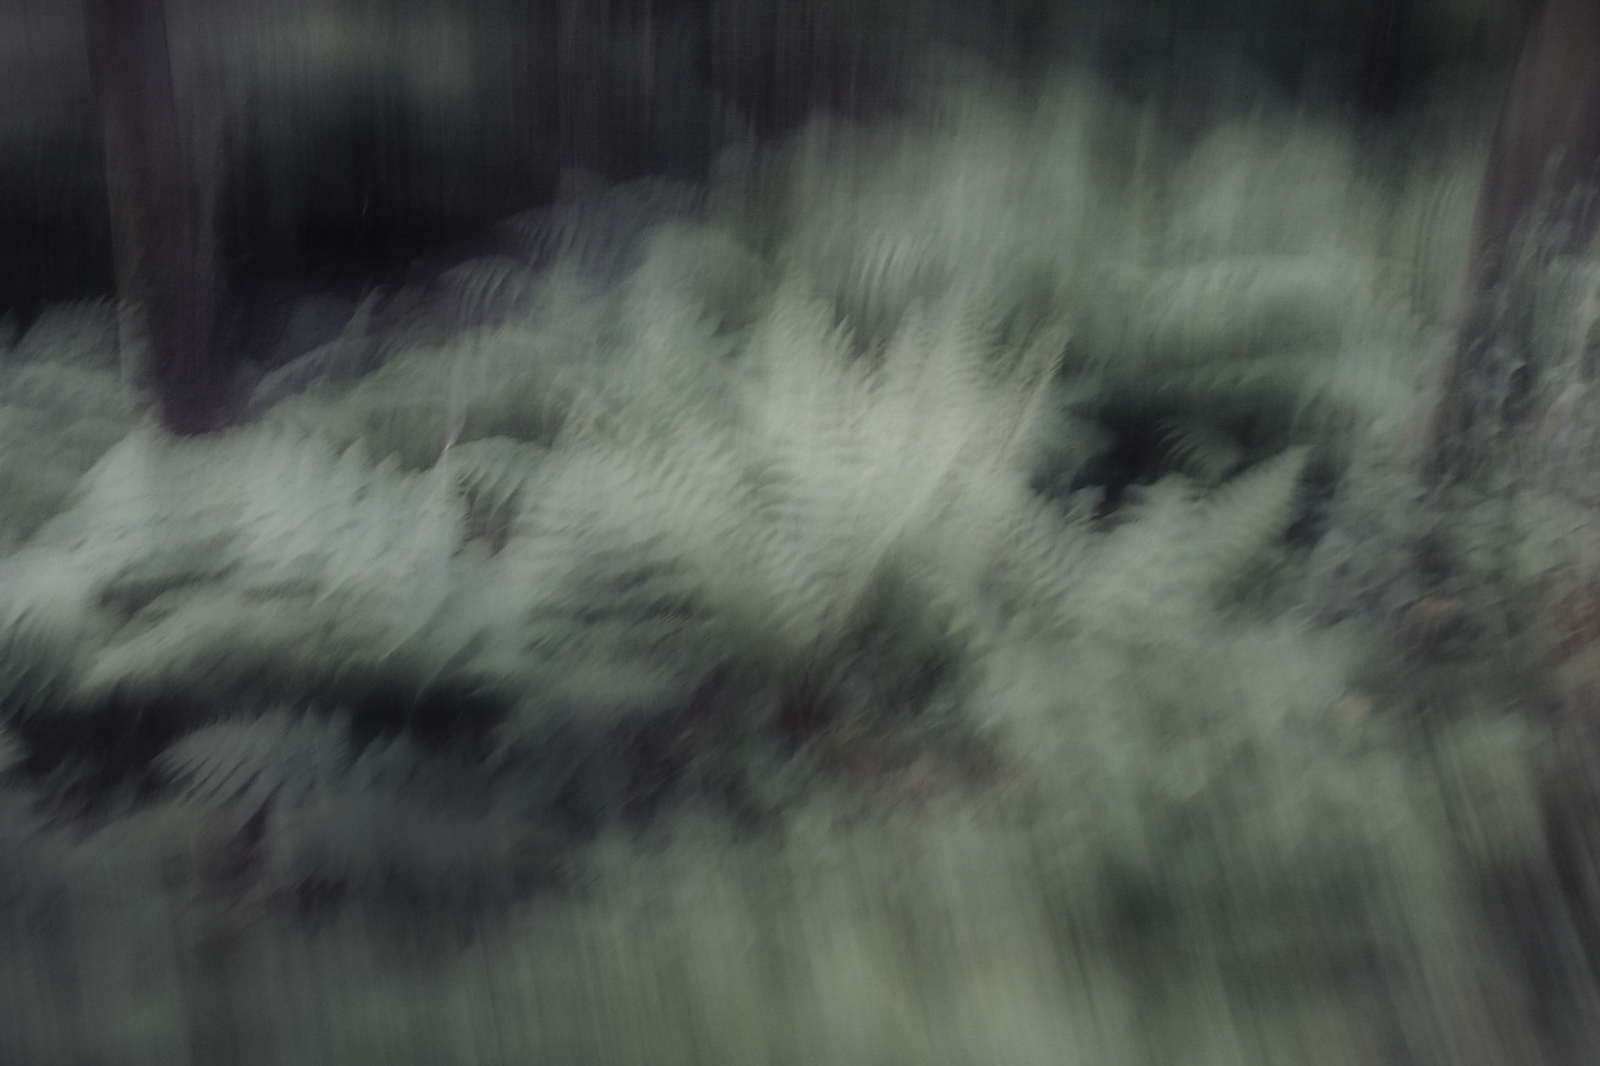 Motion-blurred ferns/bracken